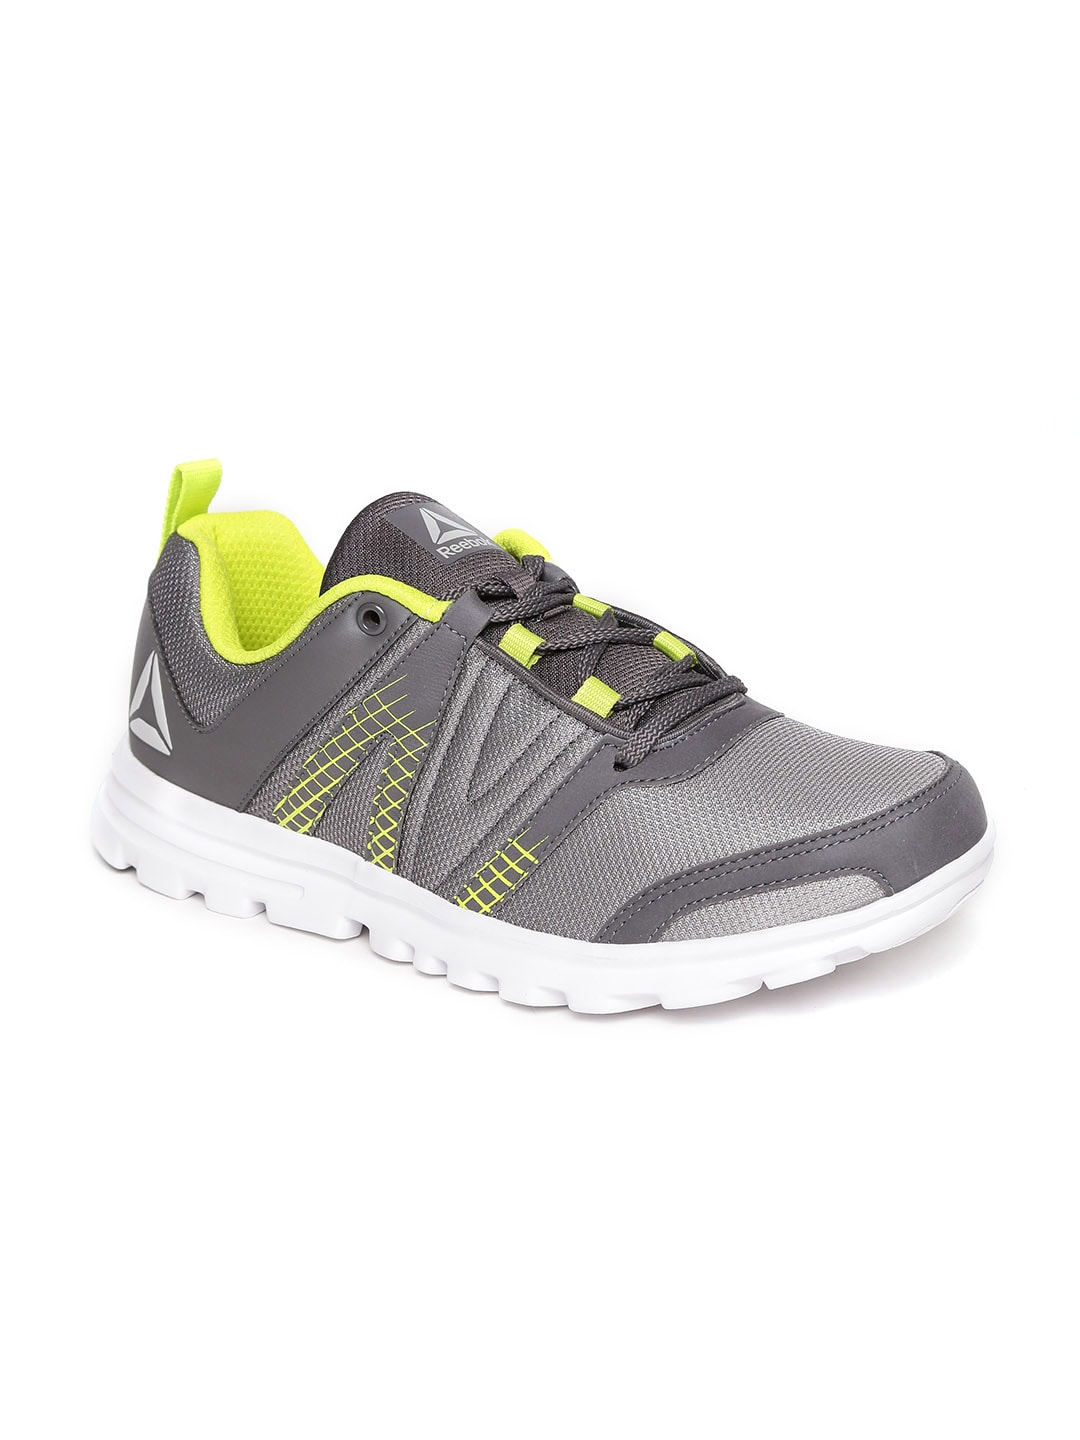 Grey Ultimate Shoes For Running Ii Atv19 India Girls In Buy Reebok wUx4Bqt5c de7fe2652